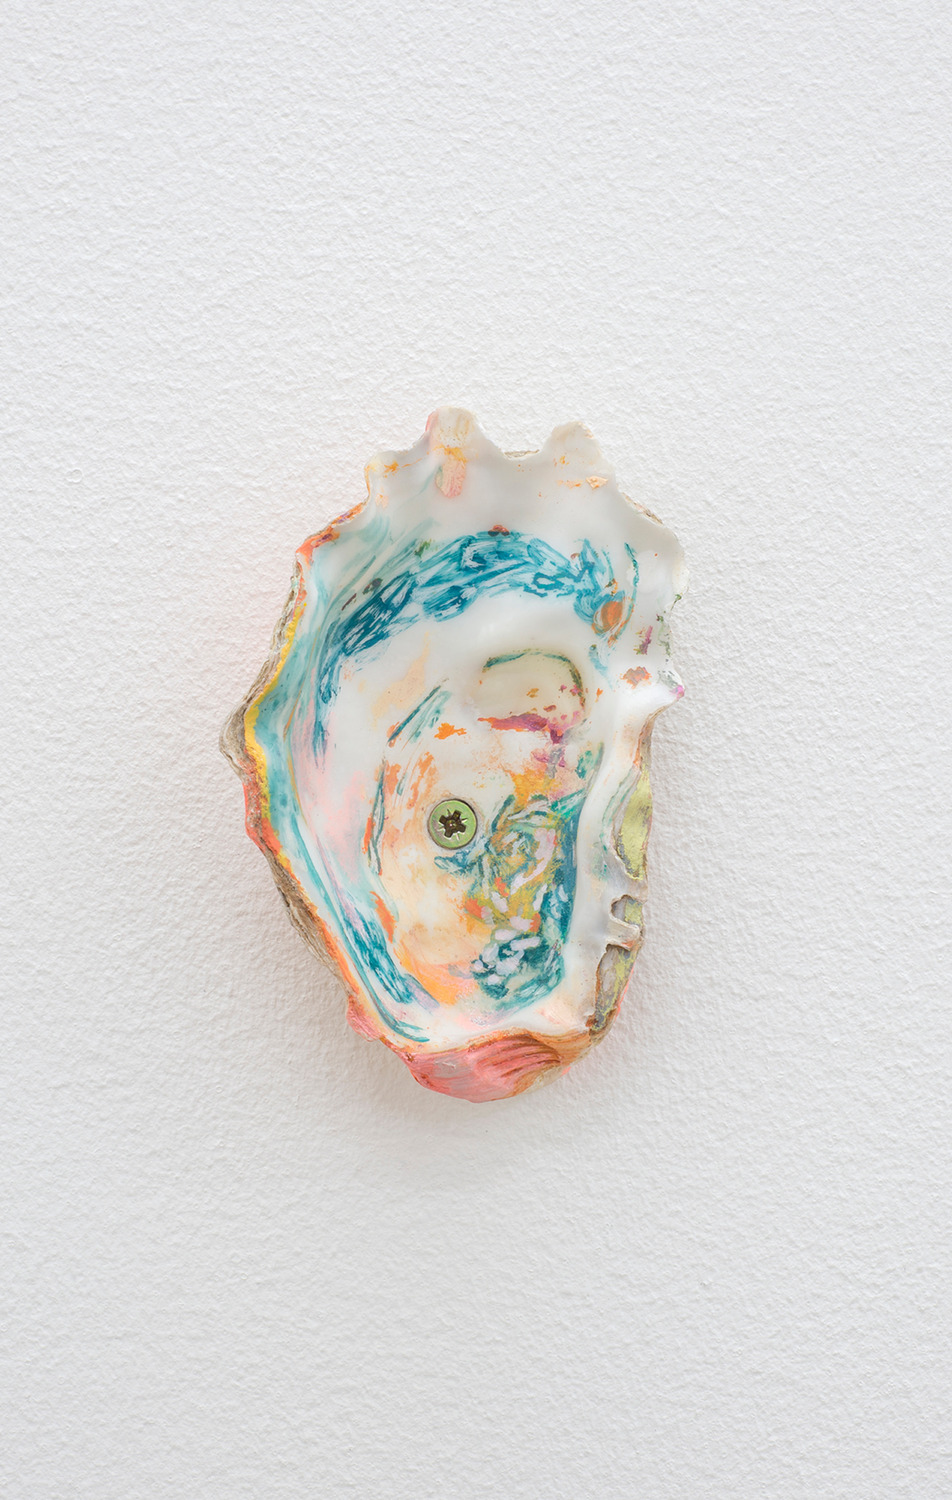 Sleepwalker, 2015, Acrylic and watercolour on shell, 8.5 x 5 x 3 cm